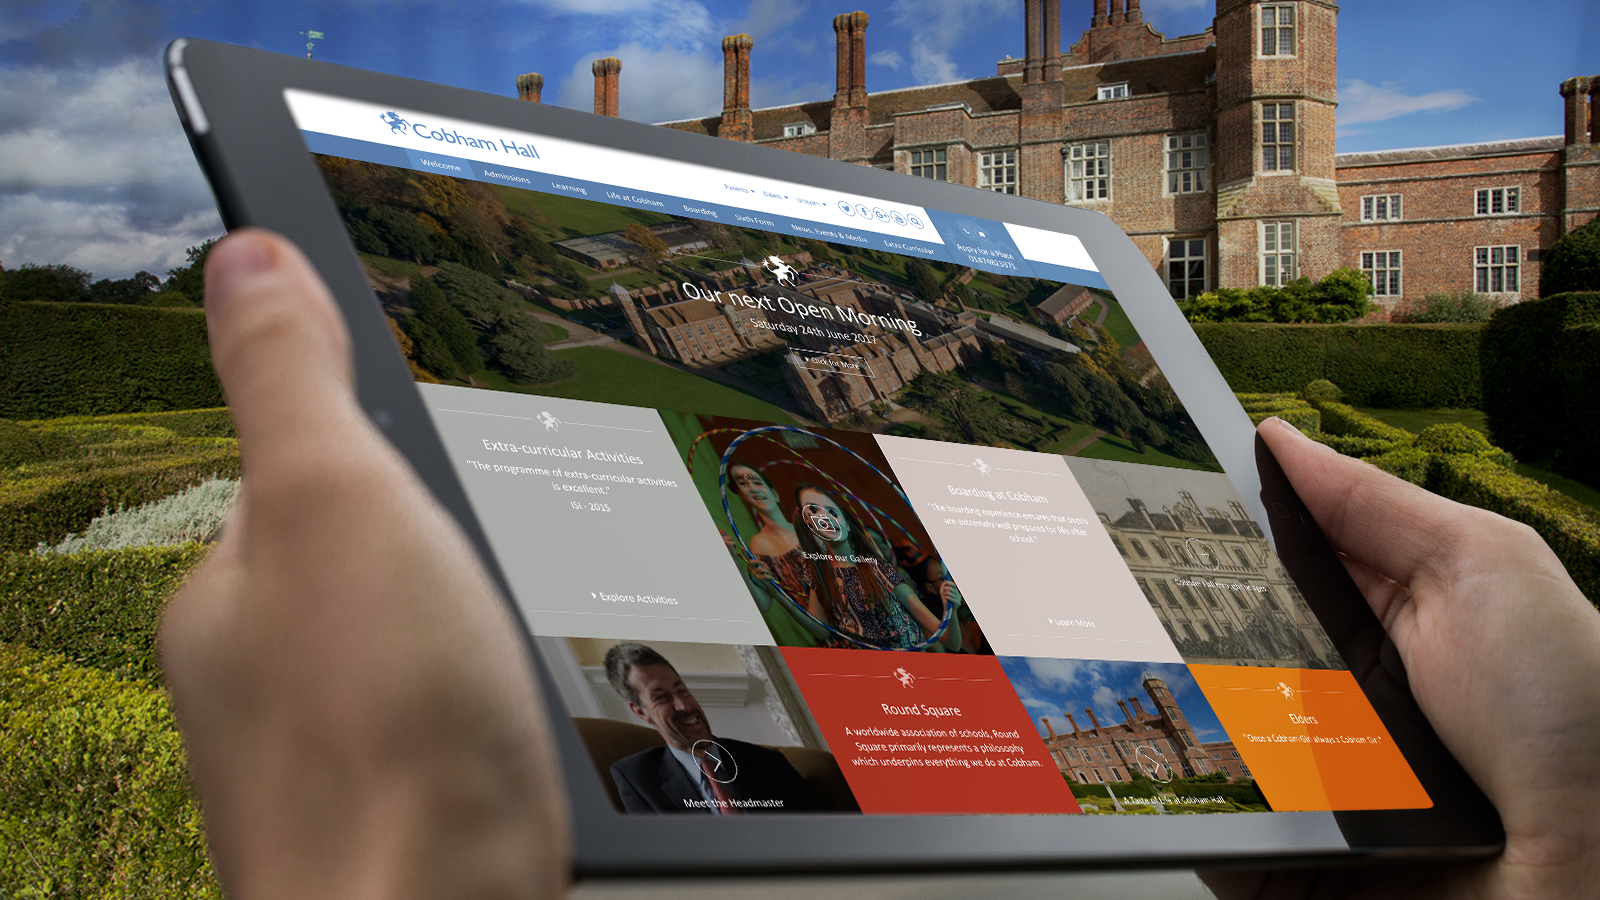 Chobham Hall school website design for schools